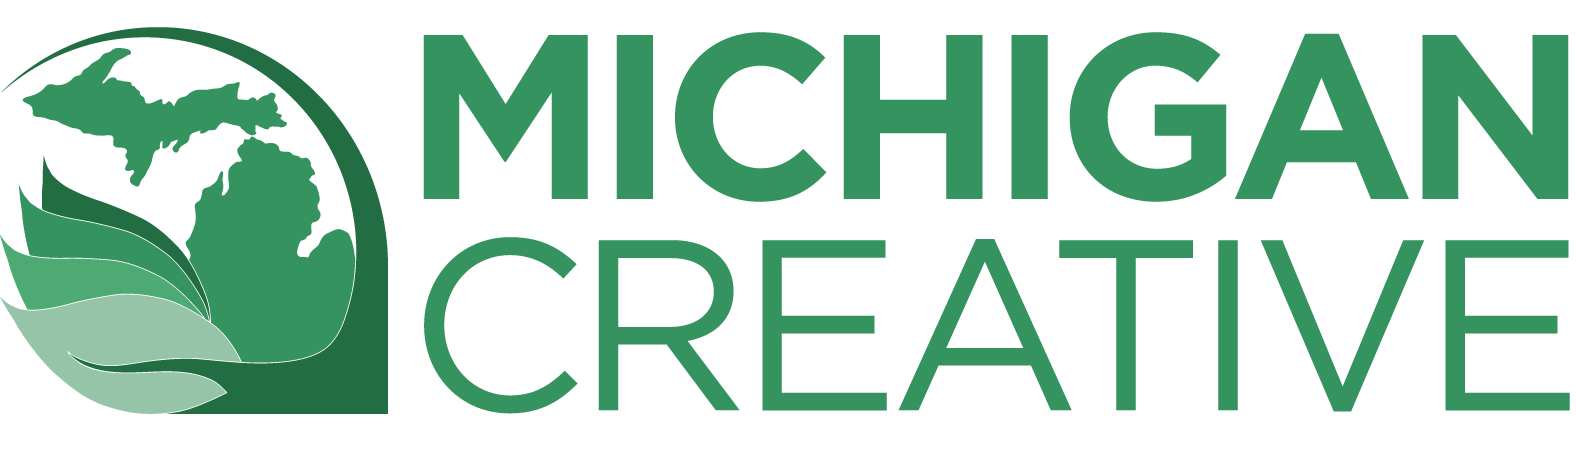 michigancreative Logo